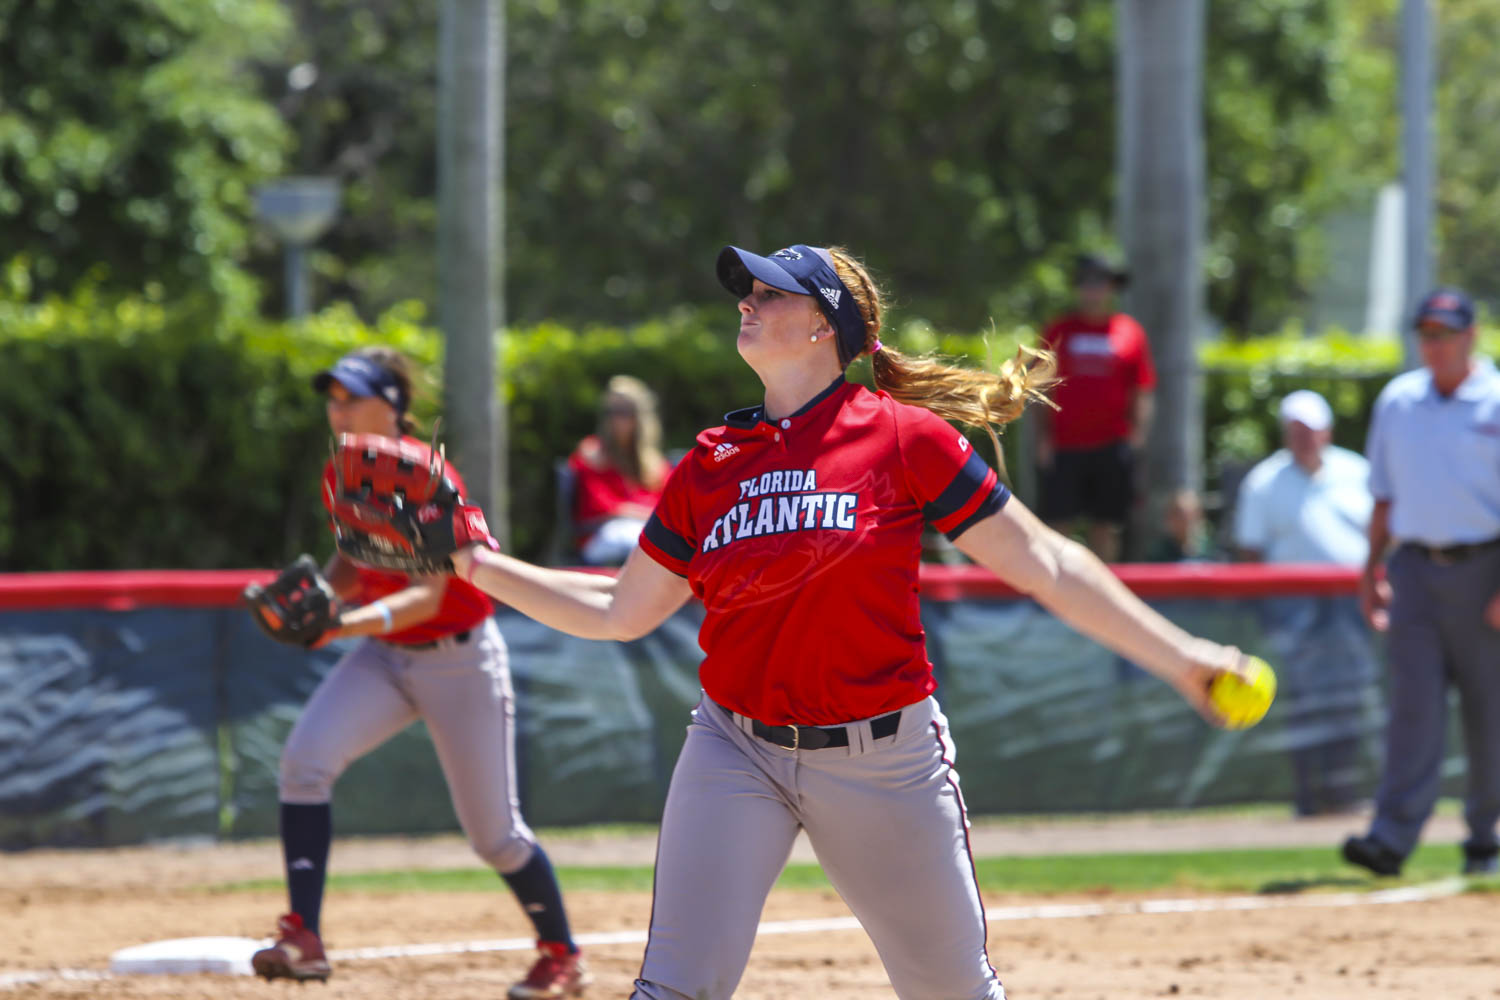 Senior Amanda Wilson throws a pitch in the Owls game against Charlotte last weekend. Alexander Rodriguez | Contributing Photographer